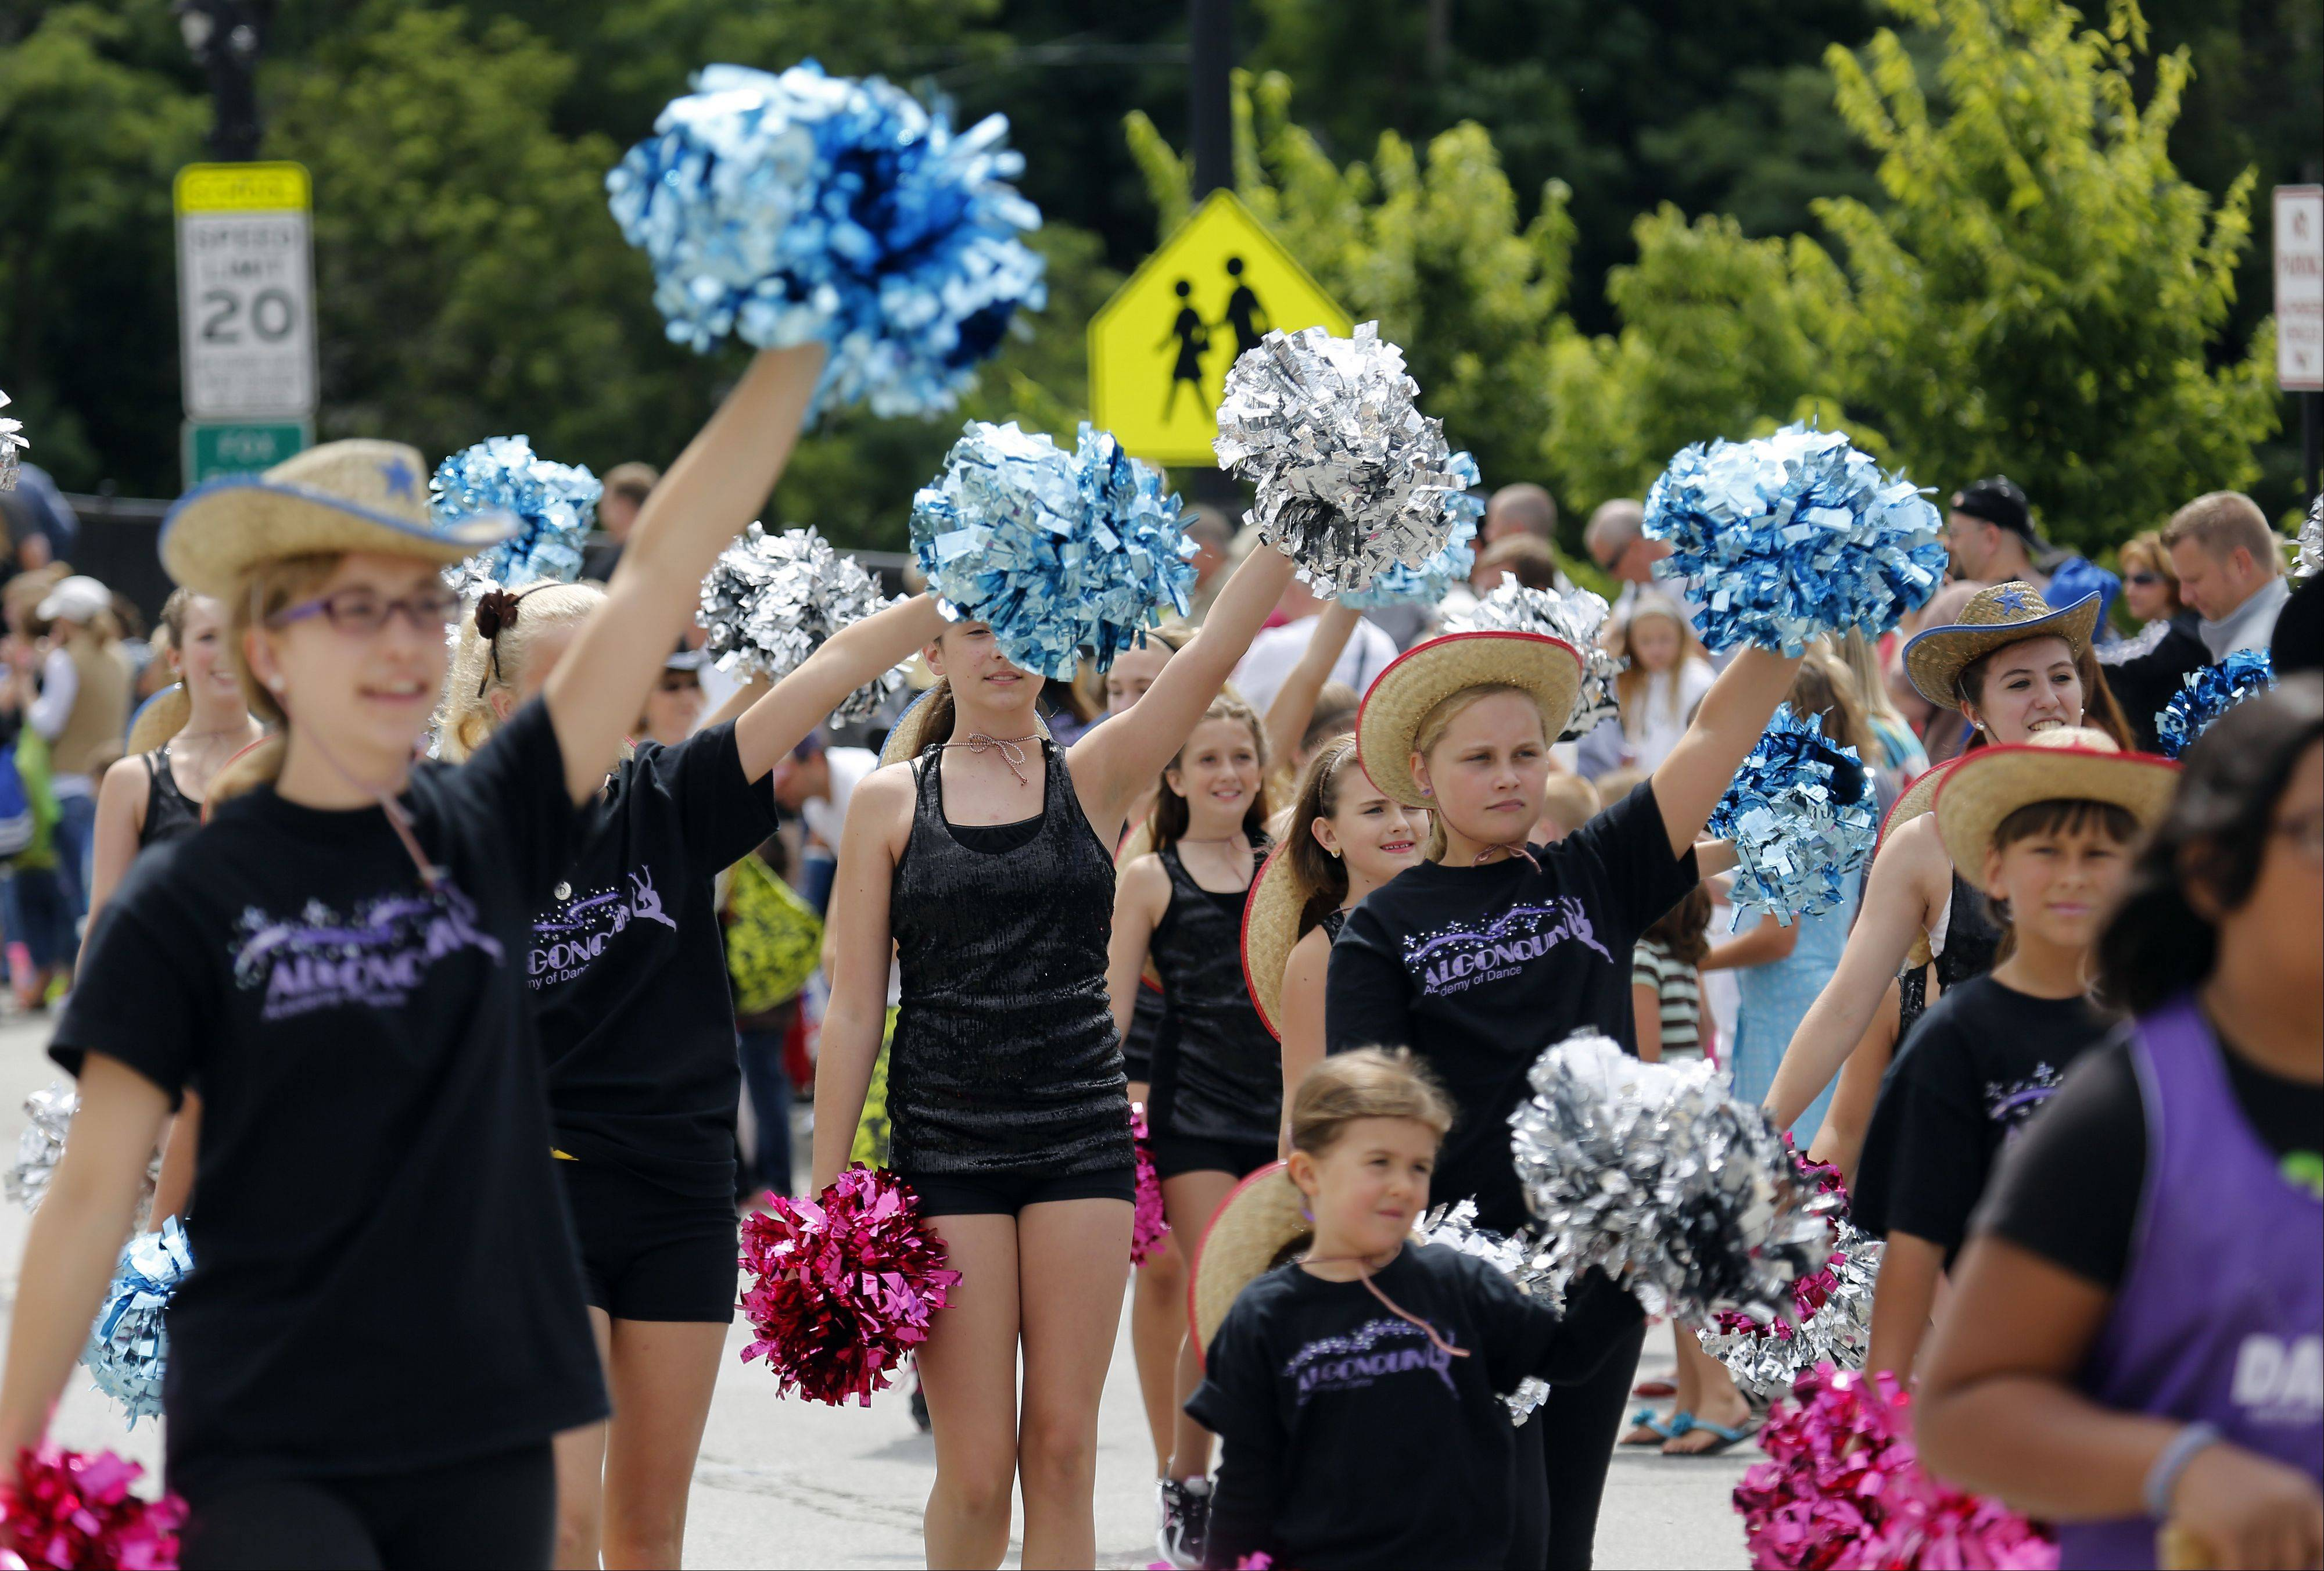 The Algonquin Academy of Dance & Music make their way down the parade route during Algonquin Founders Day parade Saturday.